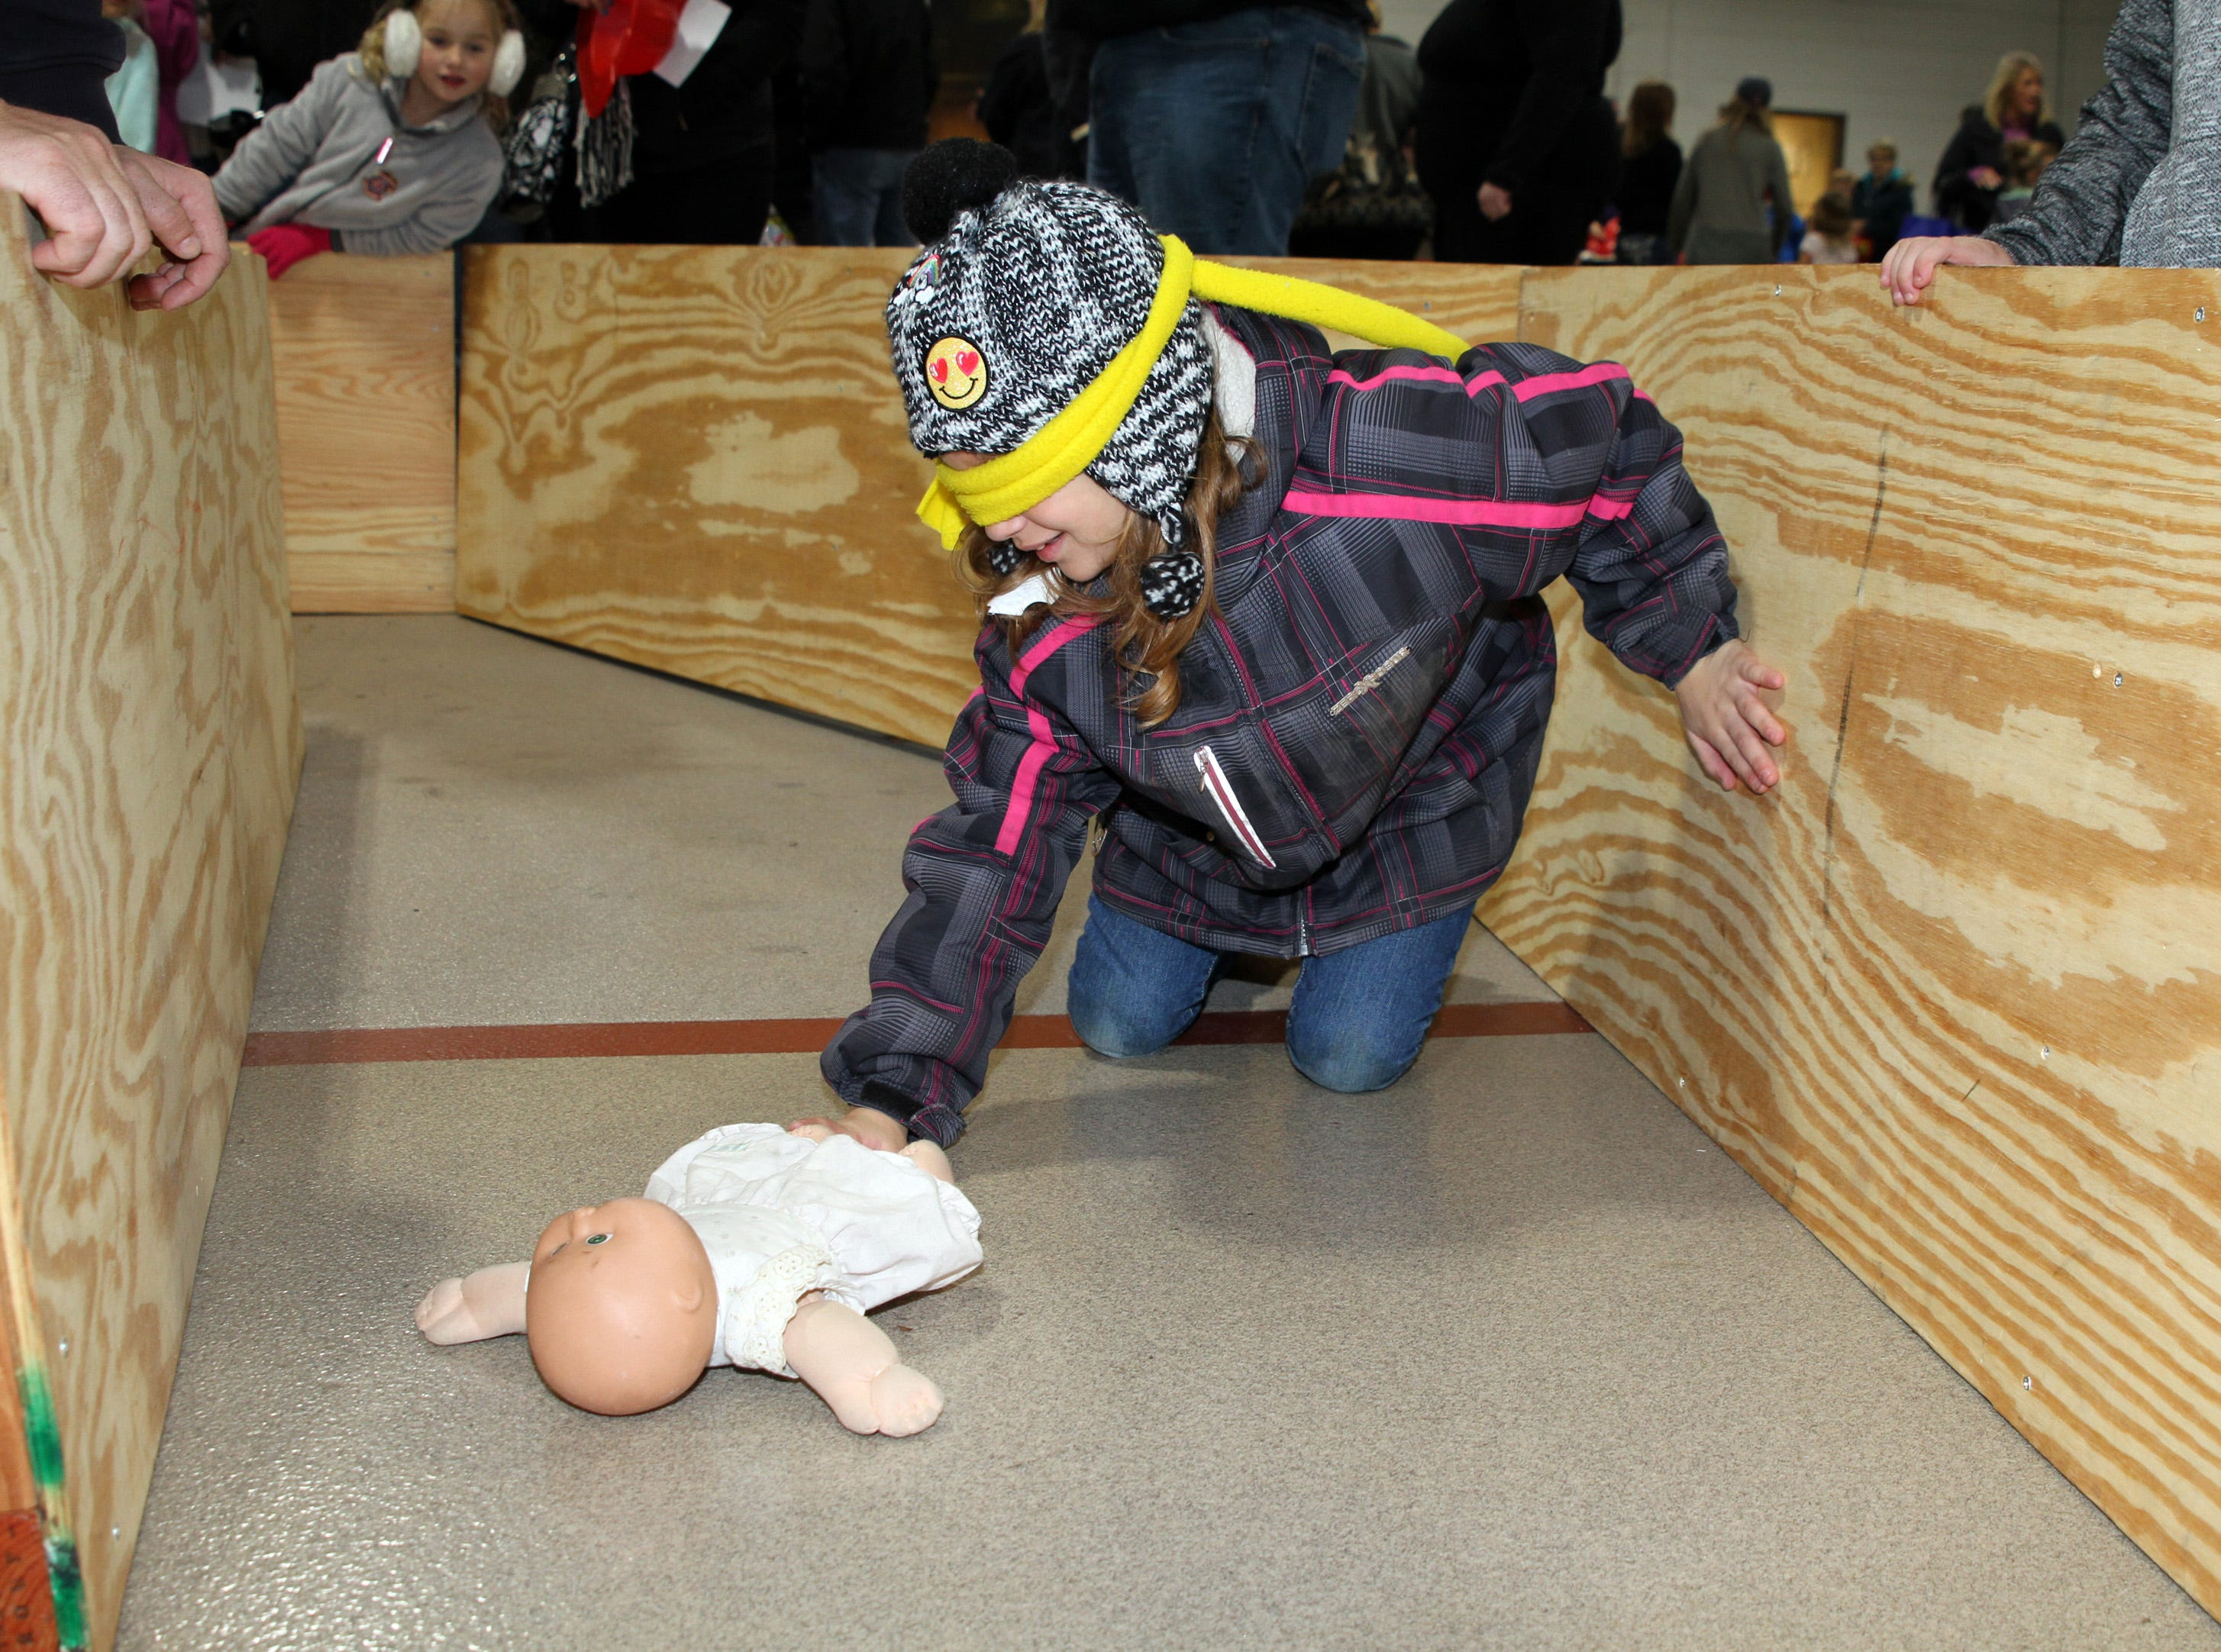 Landyn Parsons, 8, of Huxley stays low and finds the baby doll in the simulated smoke-filled dark hallway during the Ankeny Fire Department's Fire Prevention Week Open House on Wednesday, Oct. 10, 2018 at Fire Station #1, 120 N.W. Ash Dr in Ankeny.